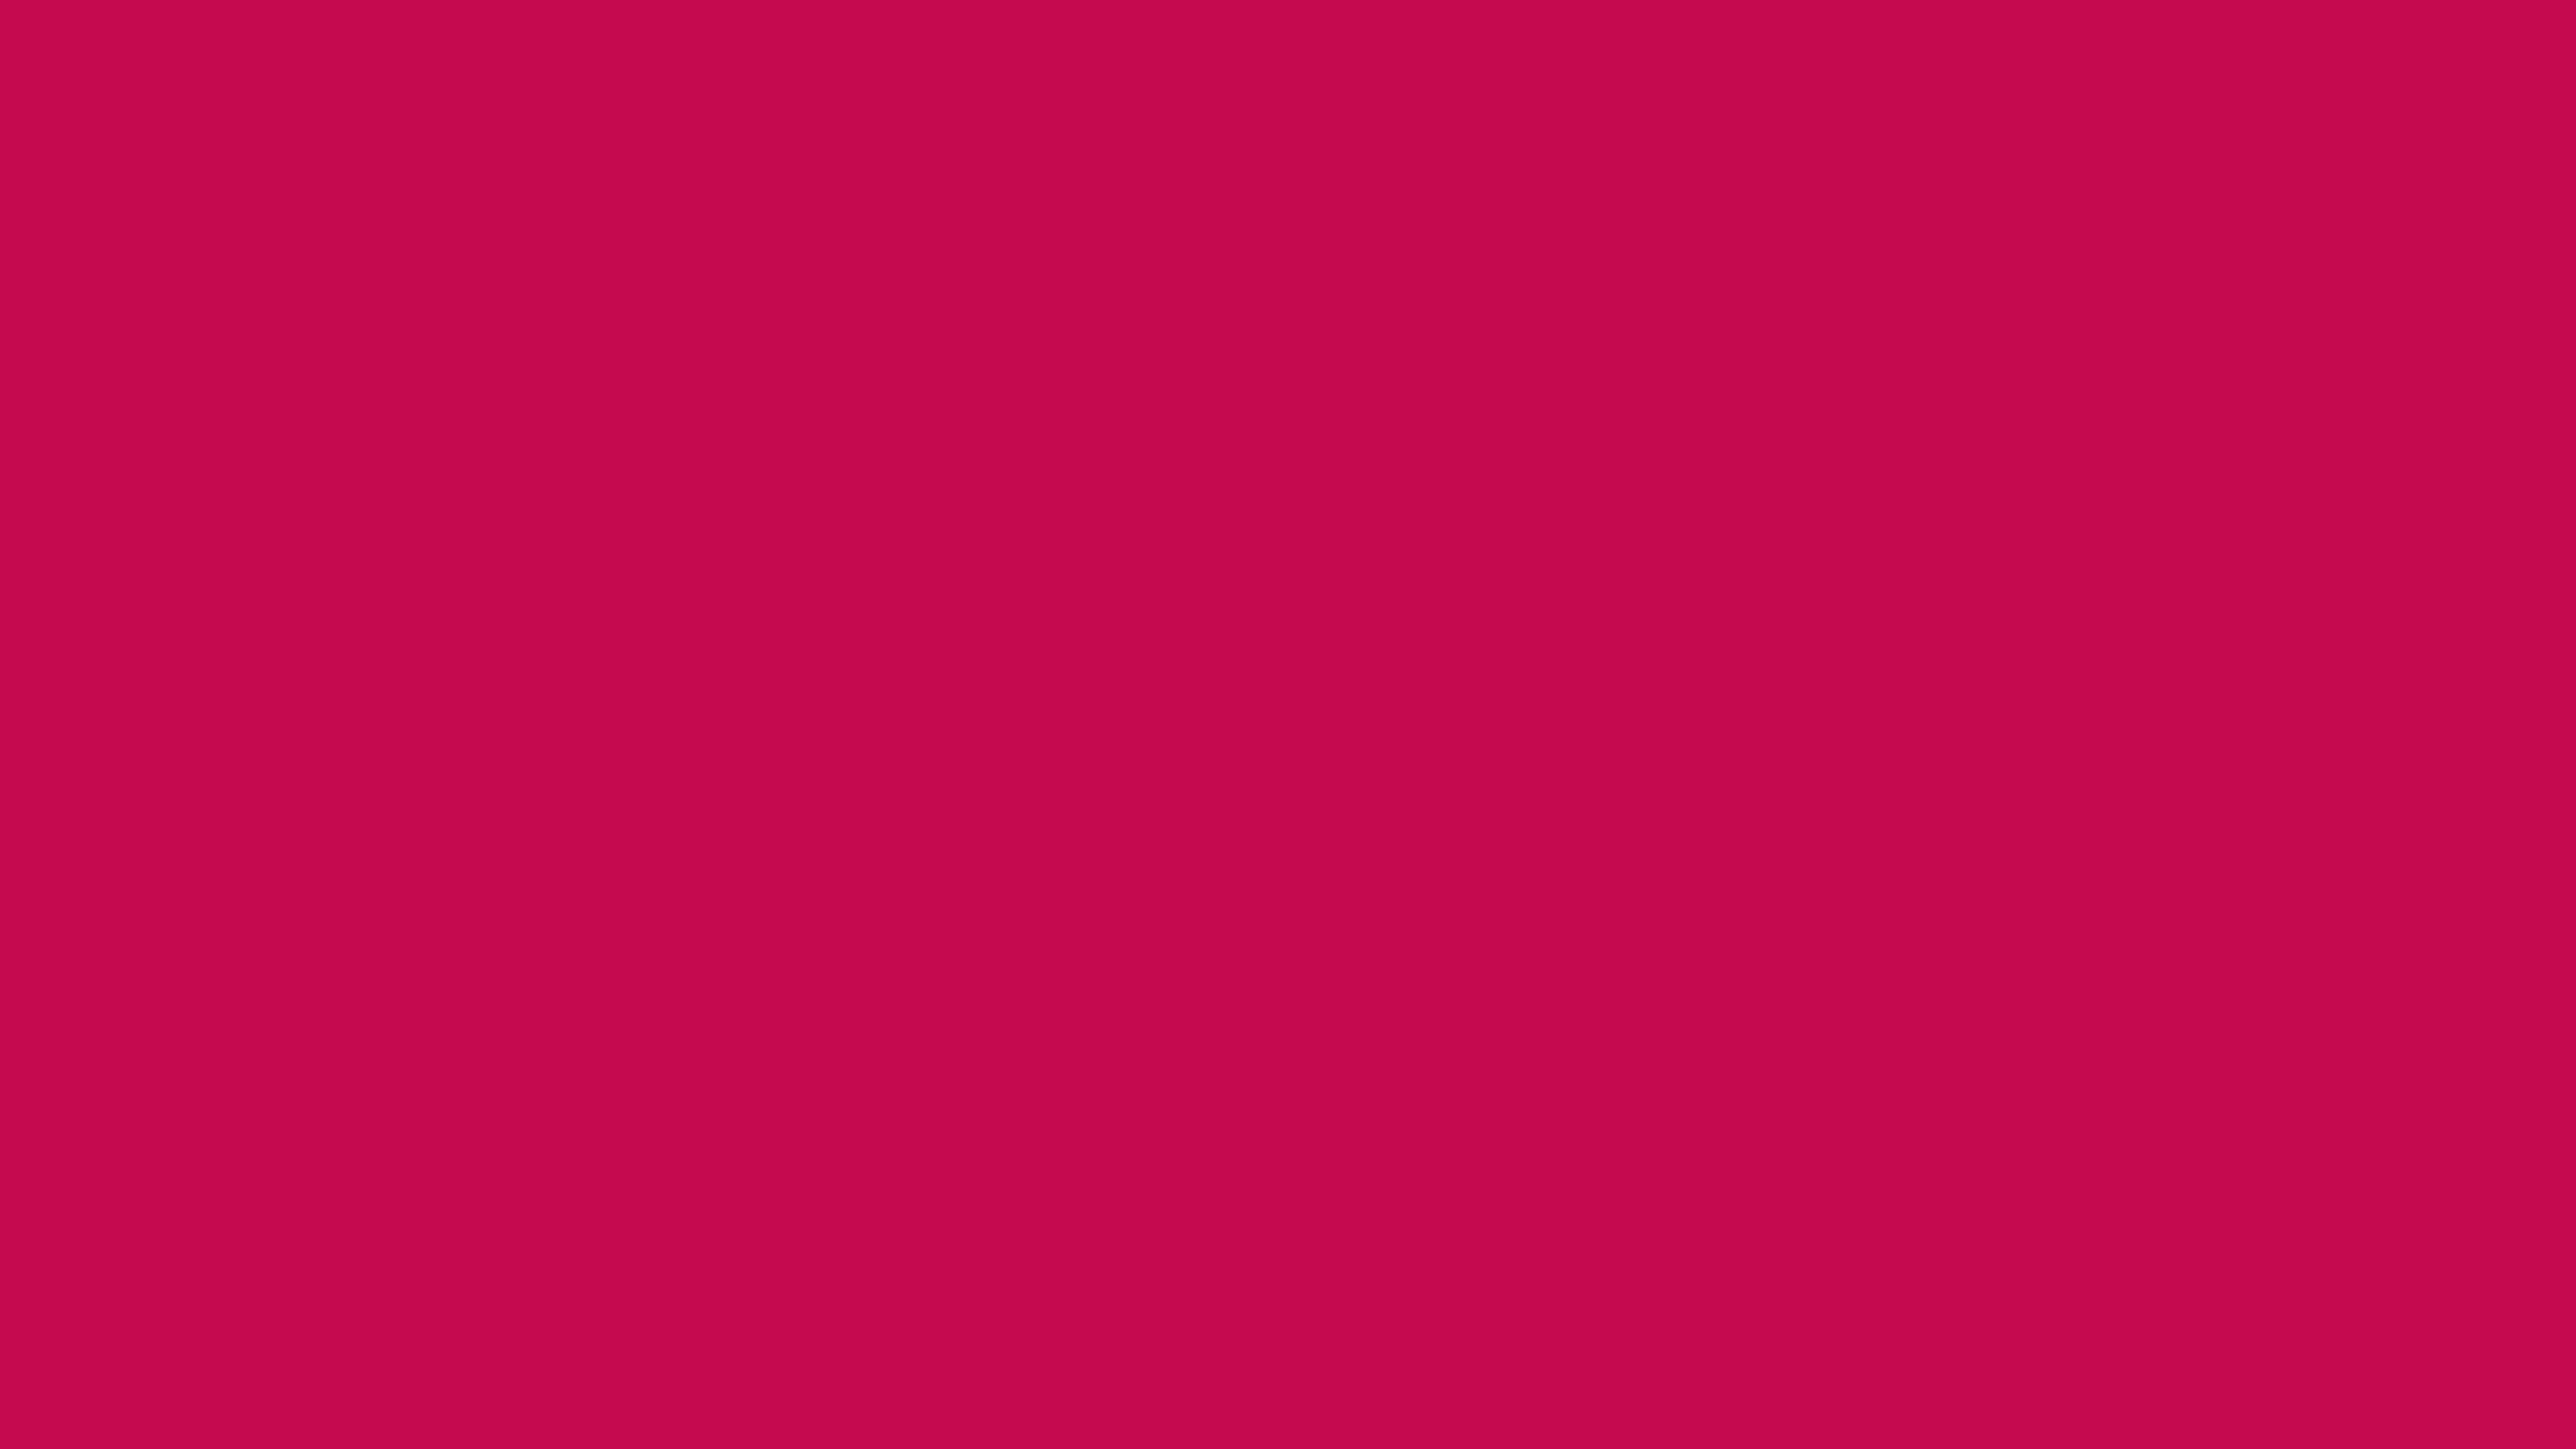 3840x2160 Pictorial Carmine Solid Color Background